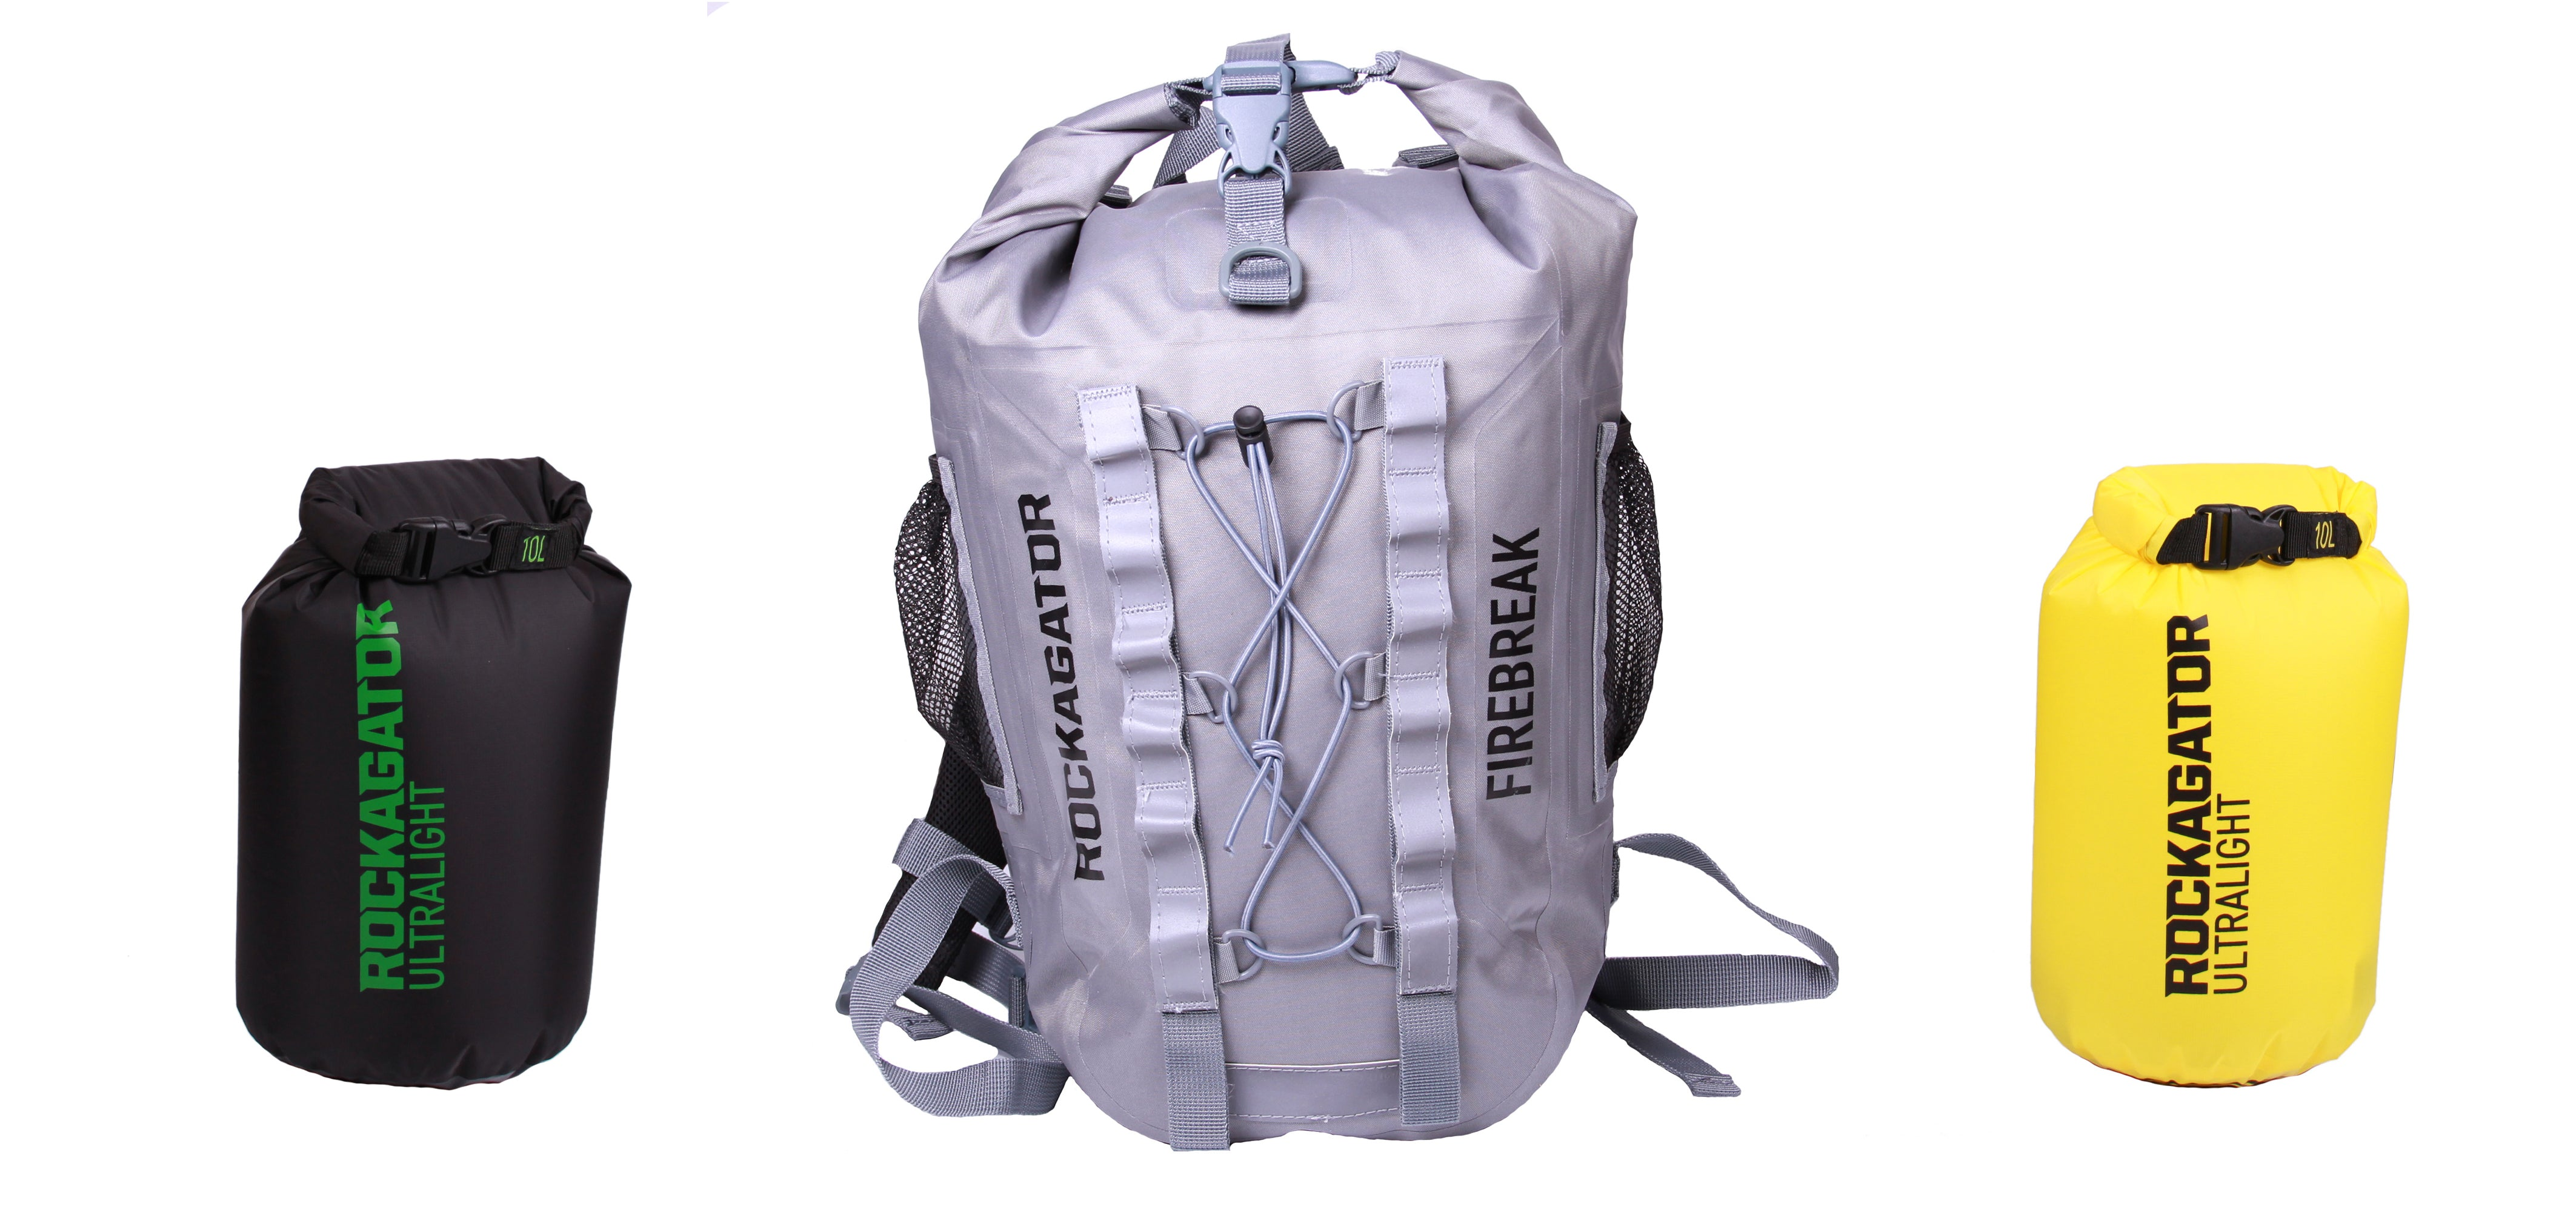 Bundle Special Firebreak Grey Ultralight 25-Liter Waterproof Backpack with Bonus Dry Bags